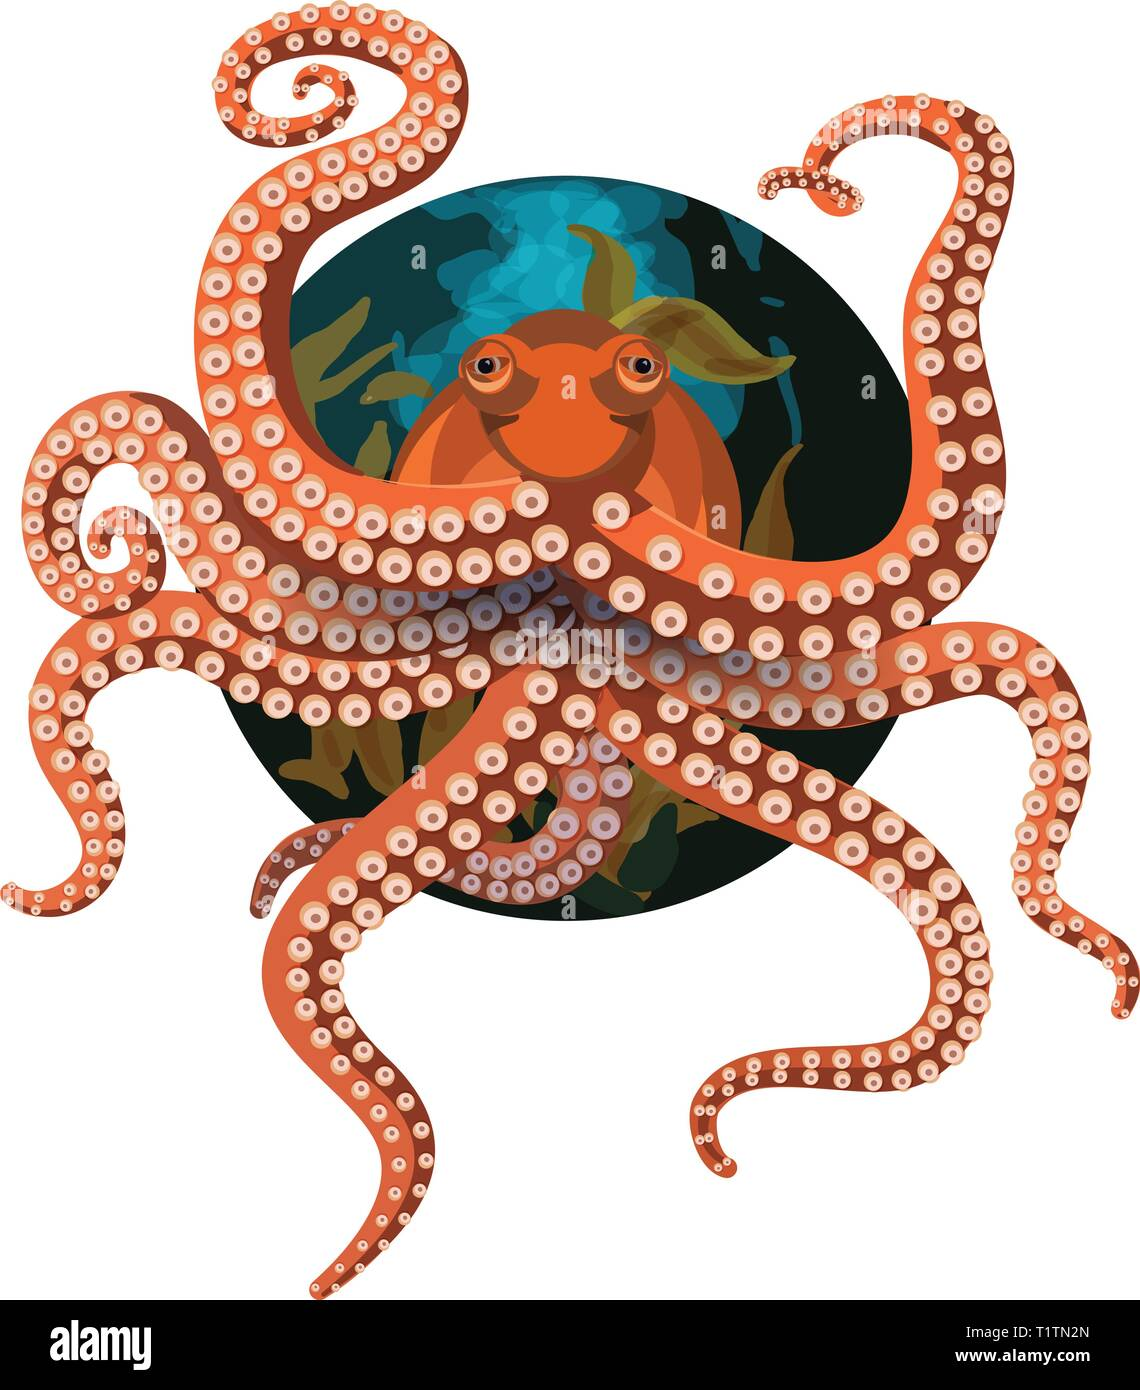 Octopus on a circular background with air bubbles and seaweed behind. - Stock Vector